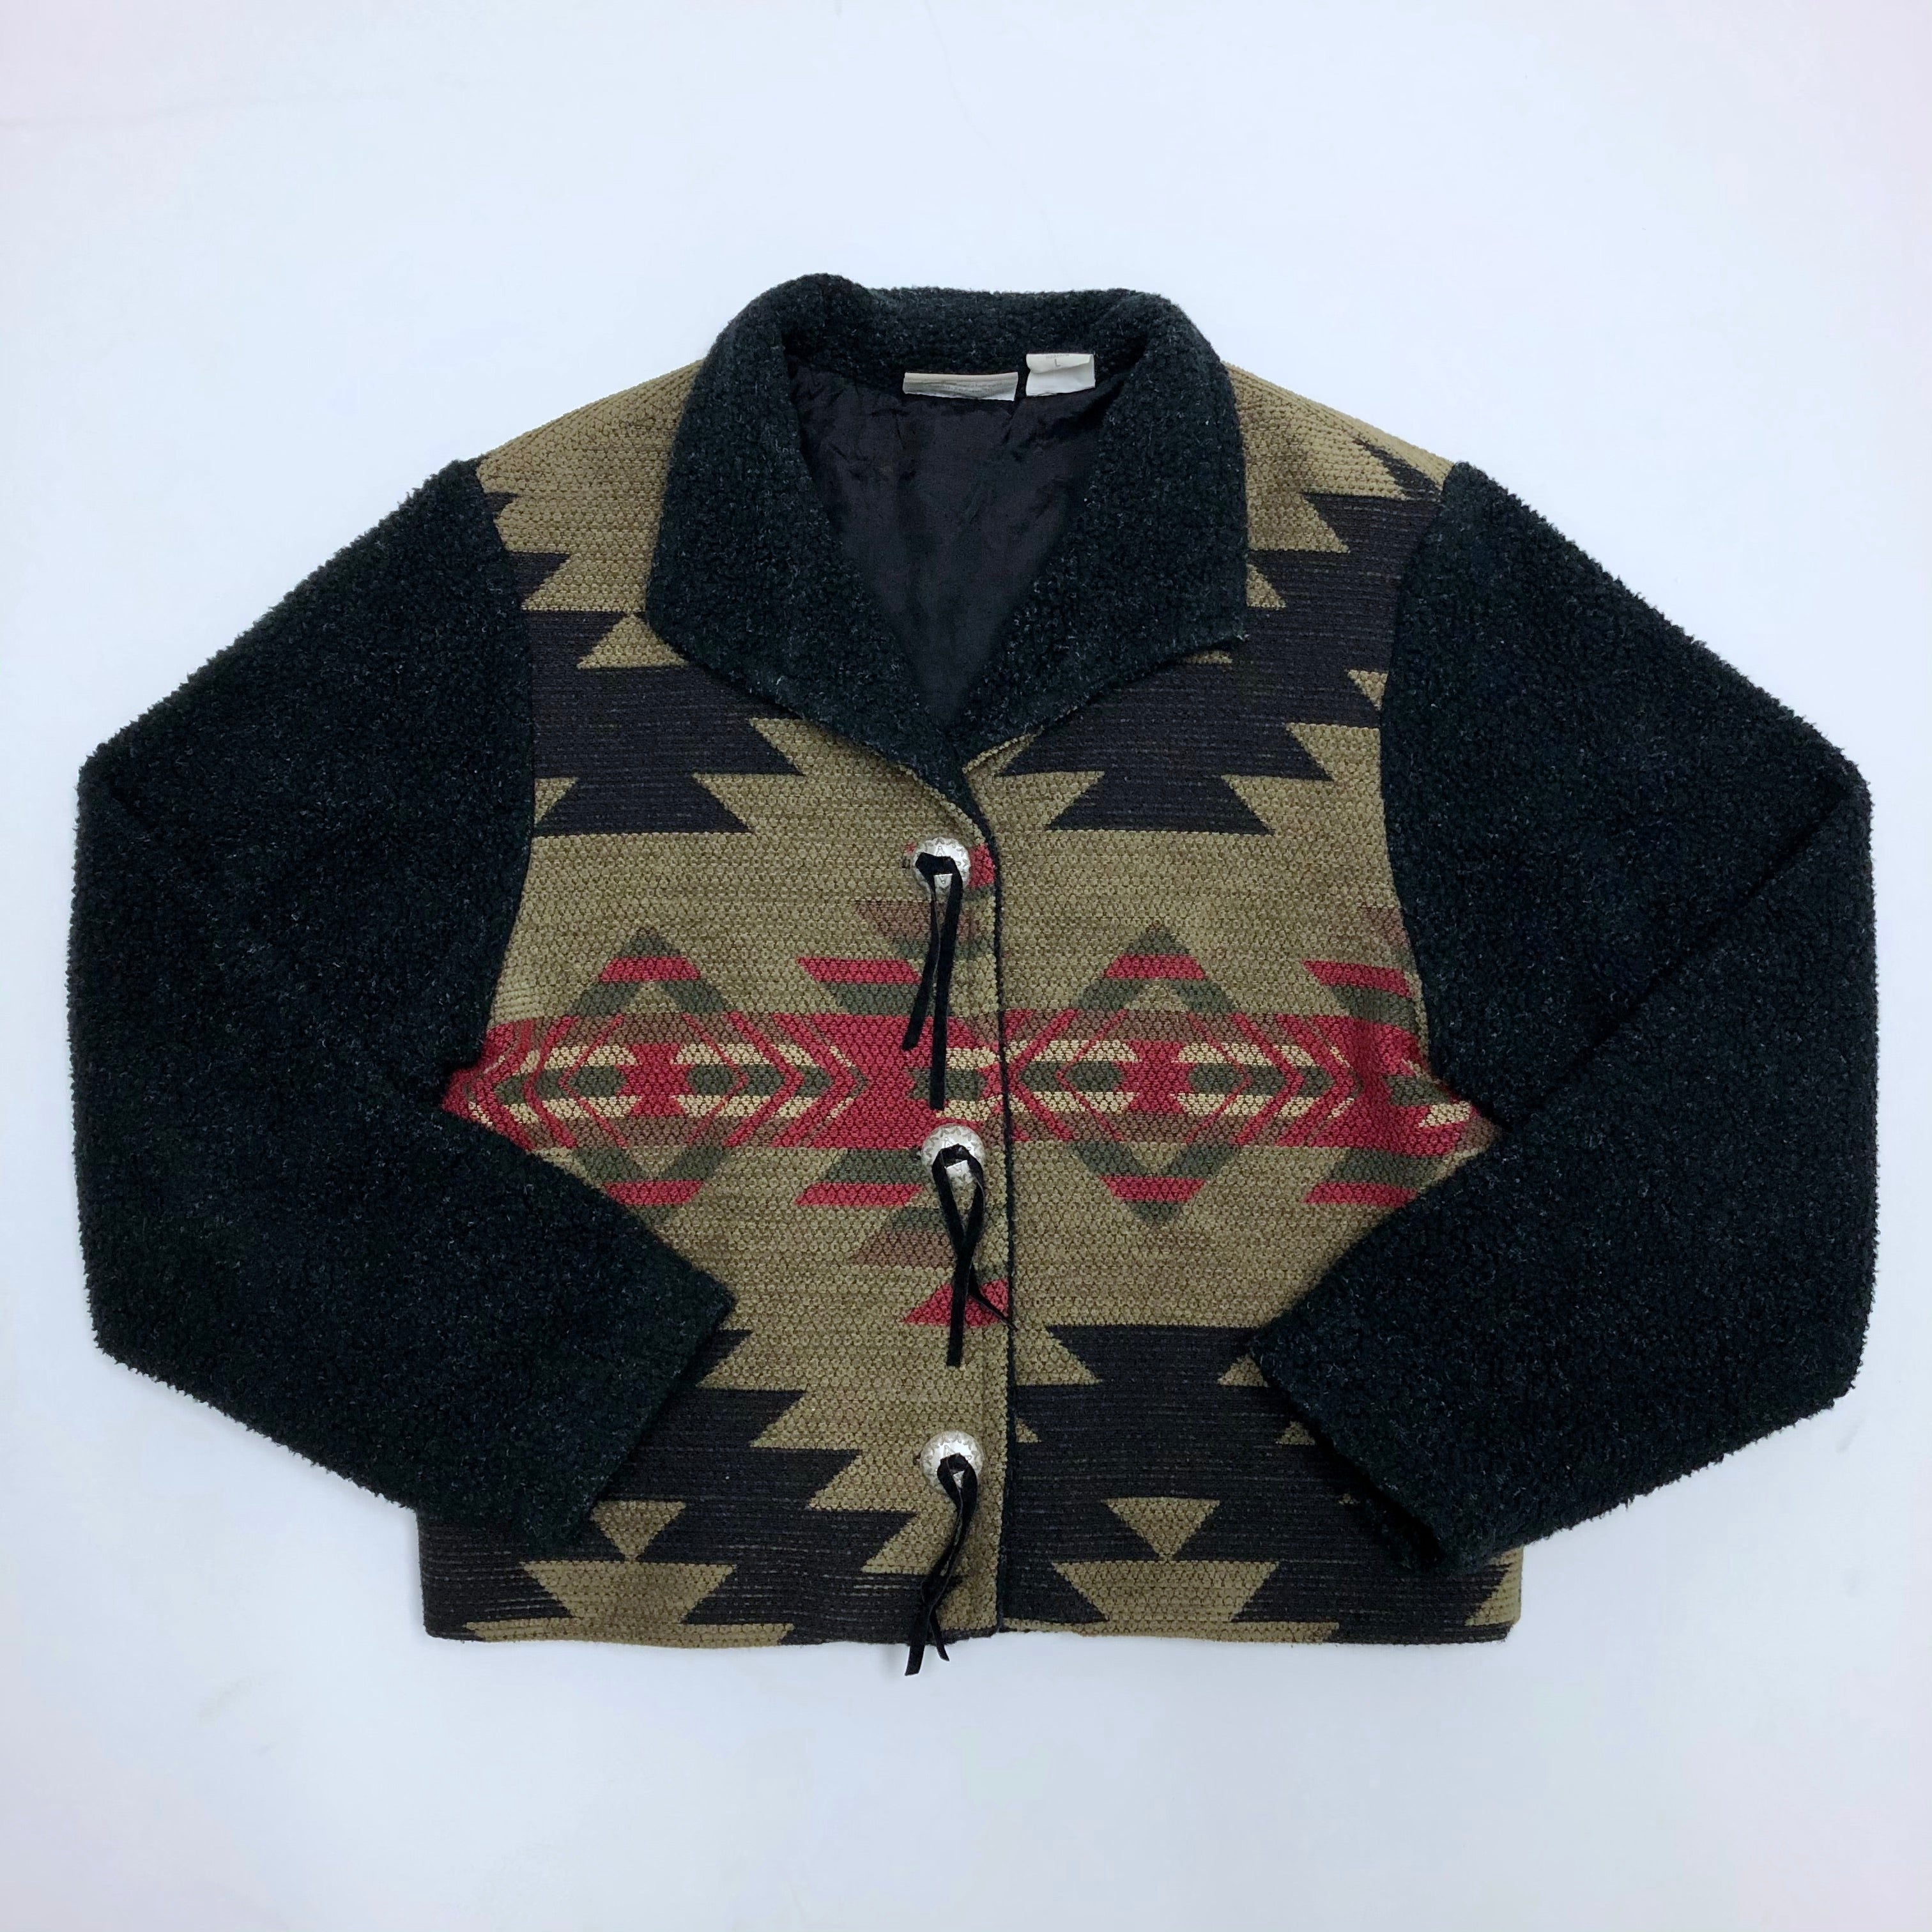 Mixed Textile-Fleece Campside Coat